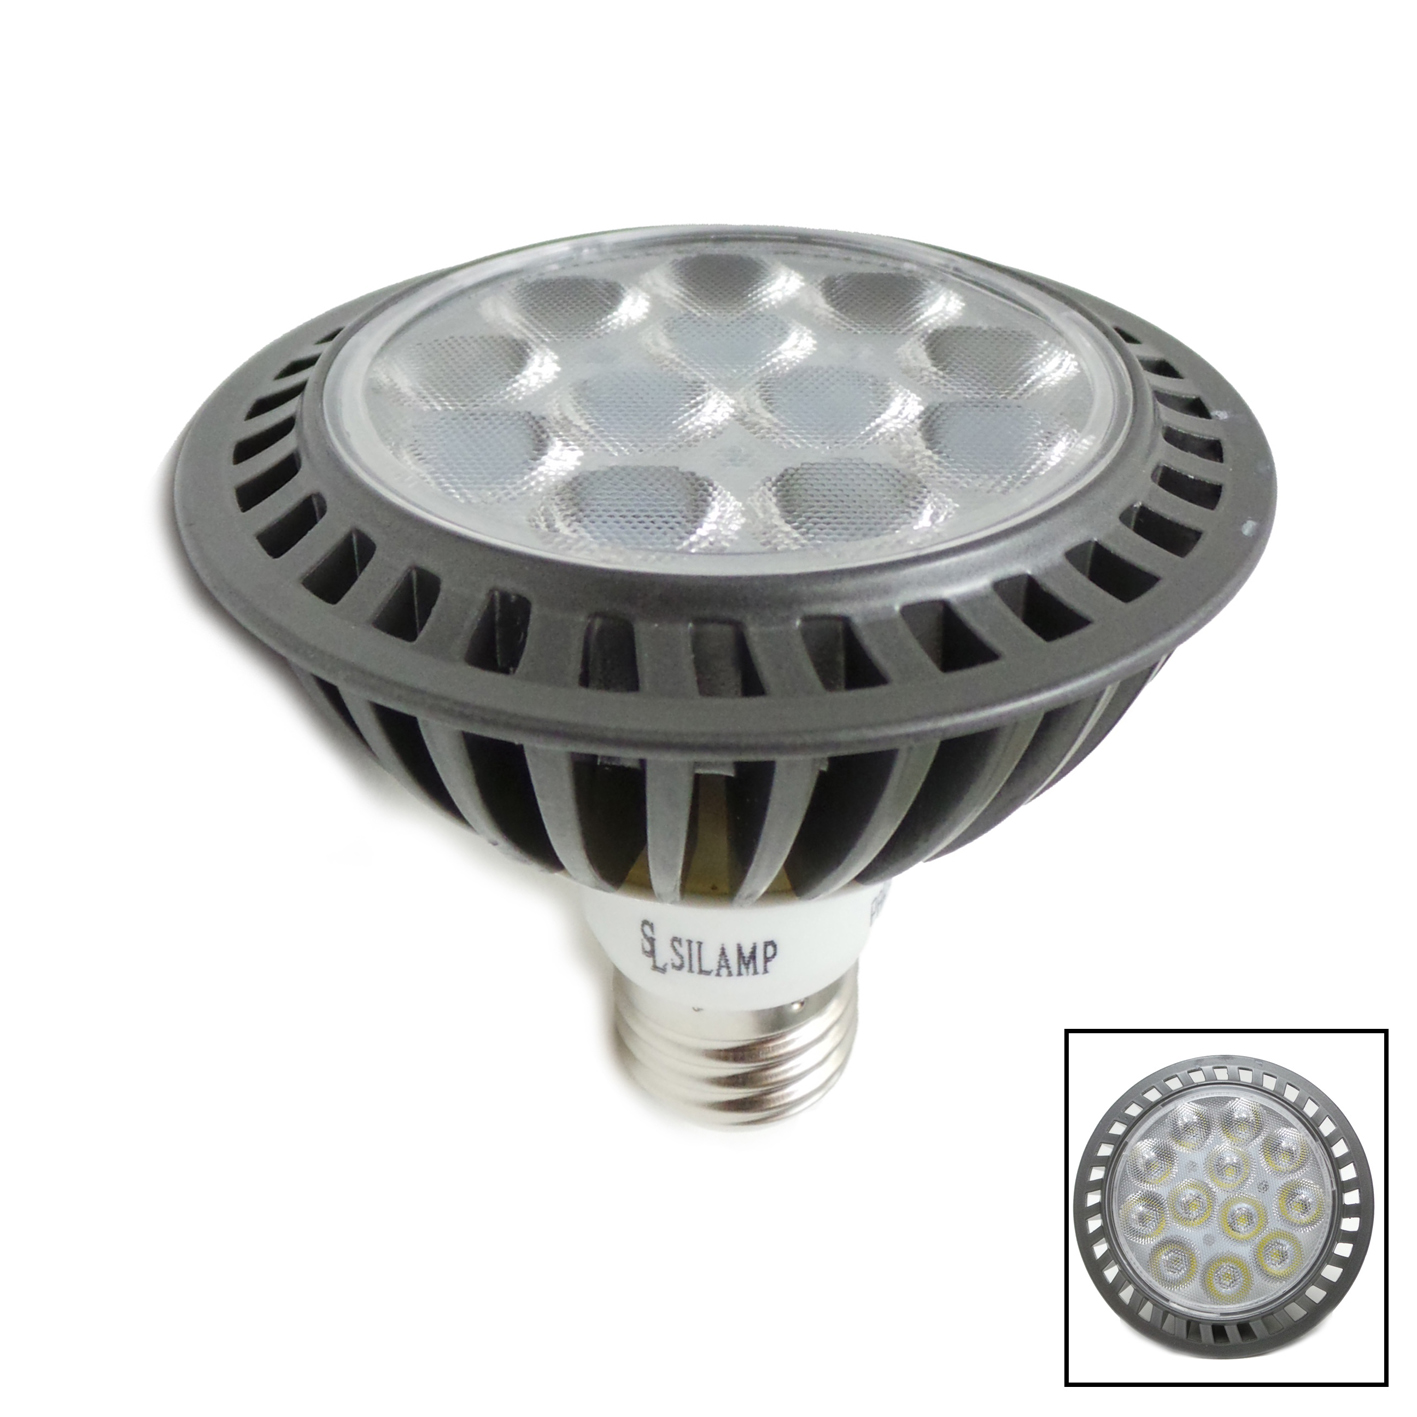 E27 LED PAR30 15W LED Light Bulb Lamp Silamp hot and cold